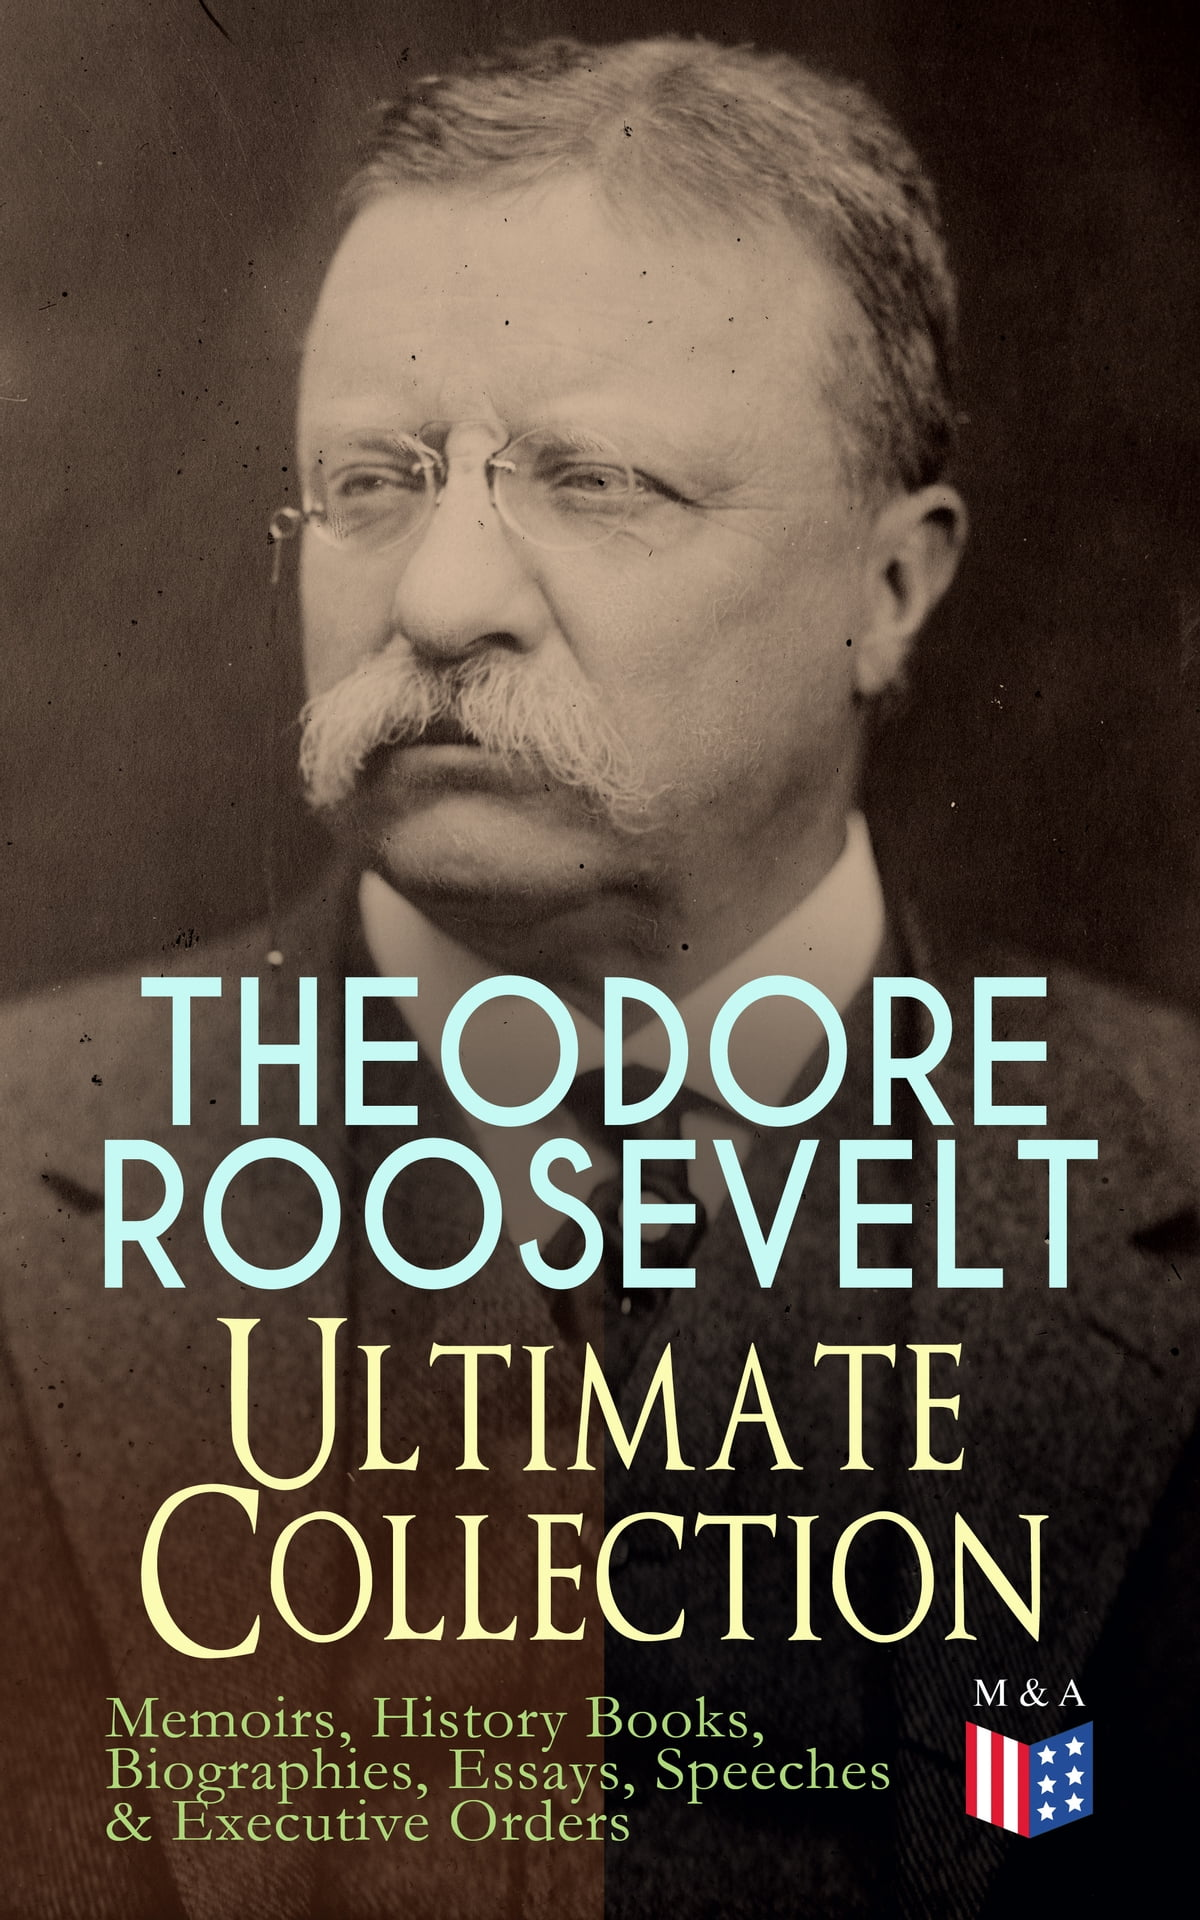 THEODORE ROOSEVELT - Ultimate Collection: Memoirs, History Books,  Biographies, Essays, Speeches &Executive Orders eBook by Theodore Roosevelt  ...